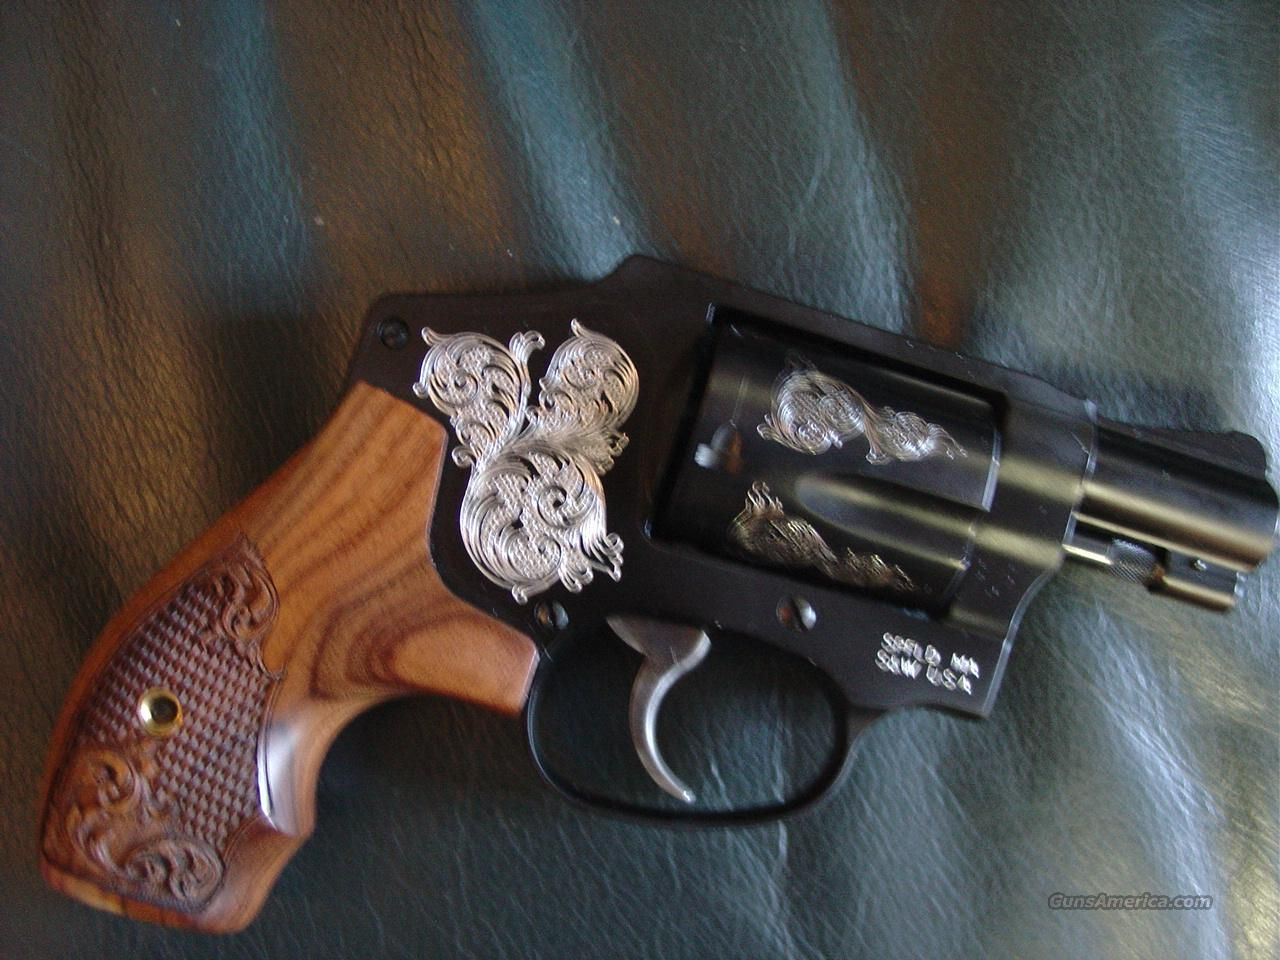 Smith & Wesson Model 442,Limited Engraved edition,38 special +P